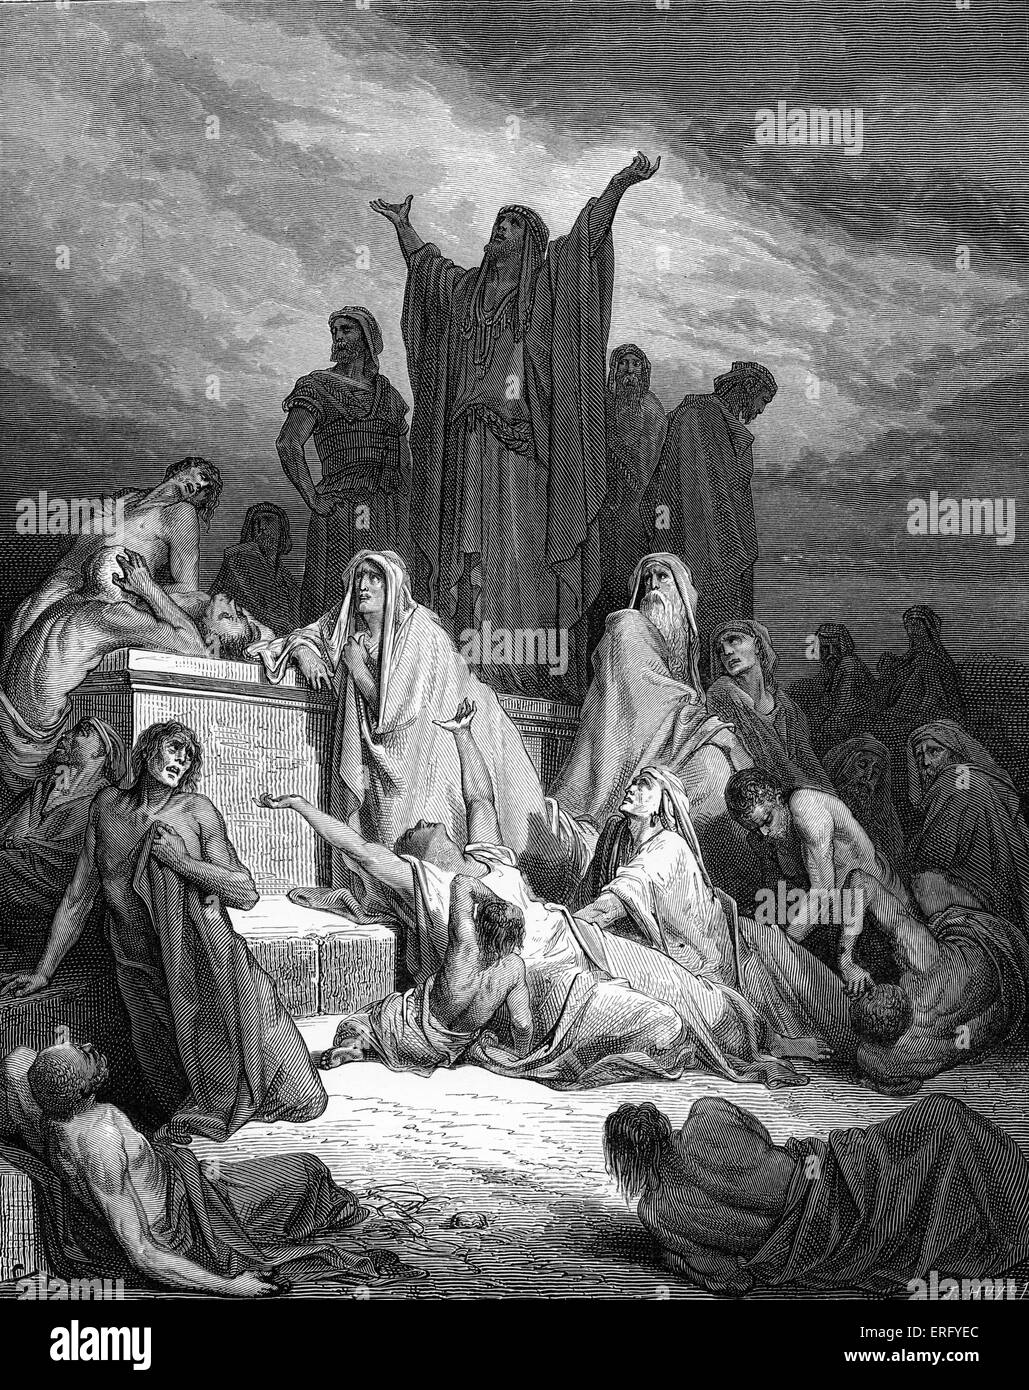 The Plague of Jerusalem, engraving by Gustave Doré. The people of Israel suffer with the plague God sent on - Stock Image